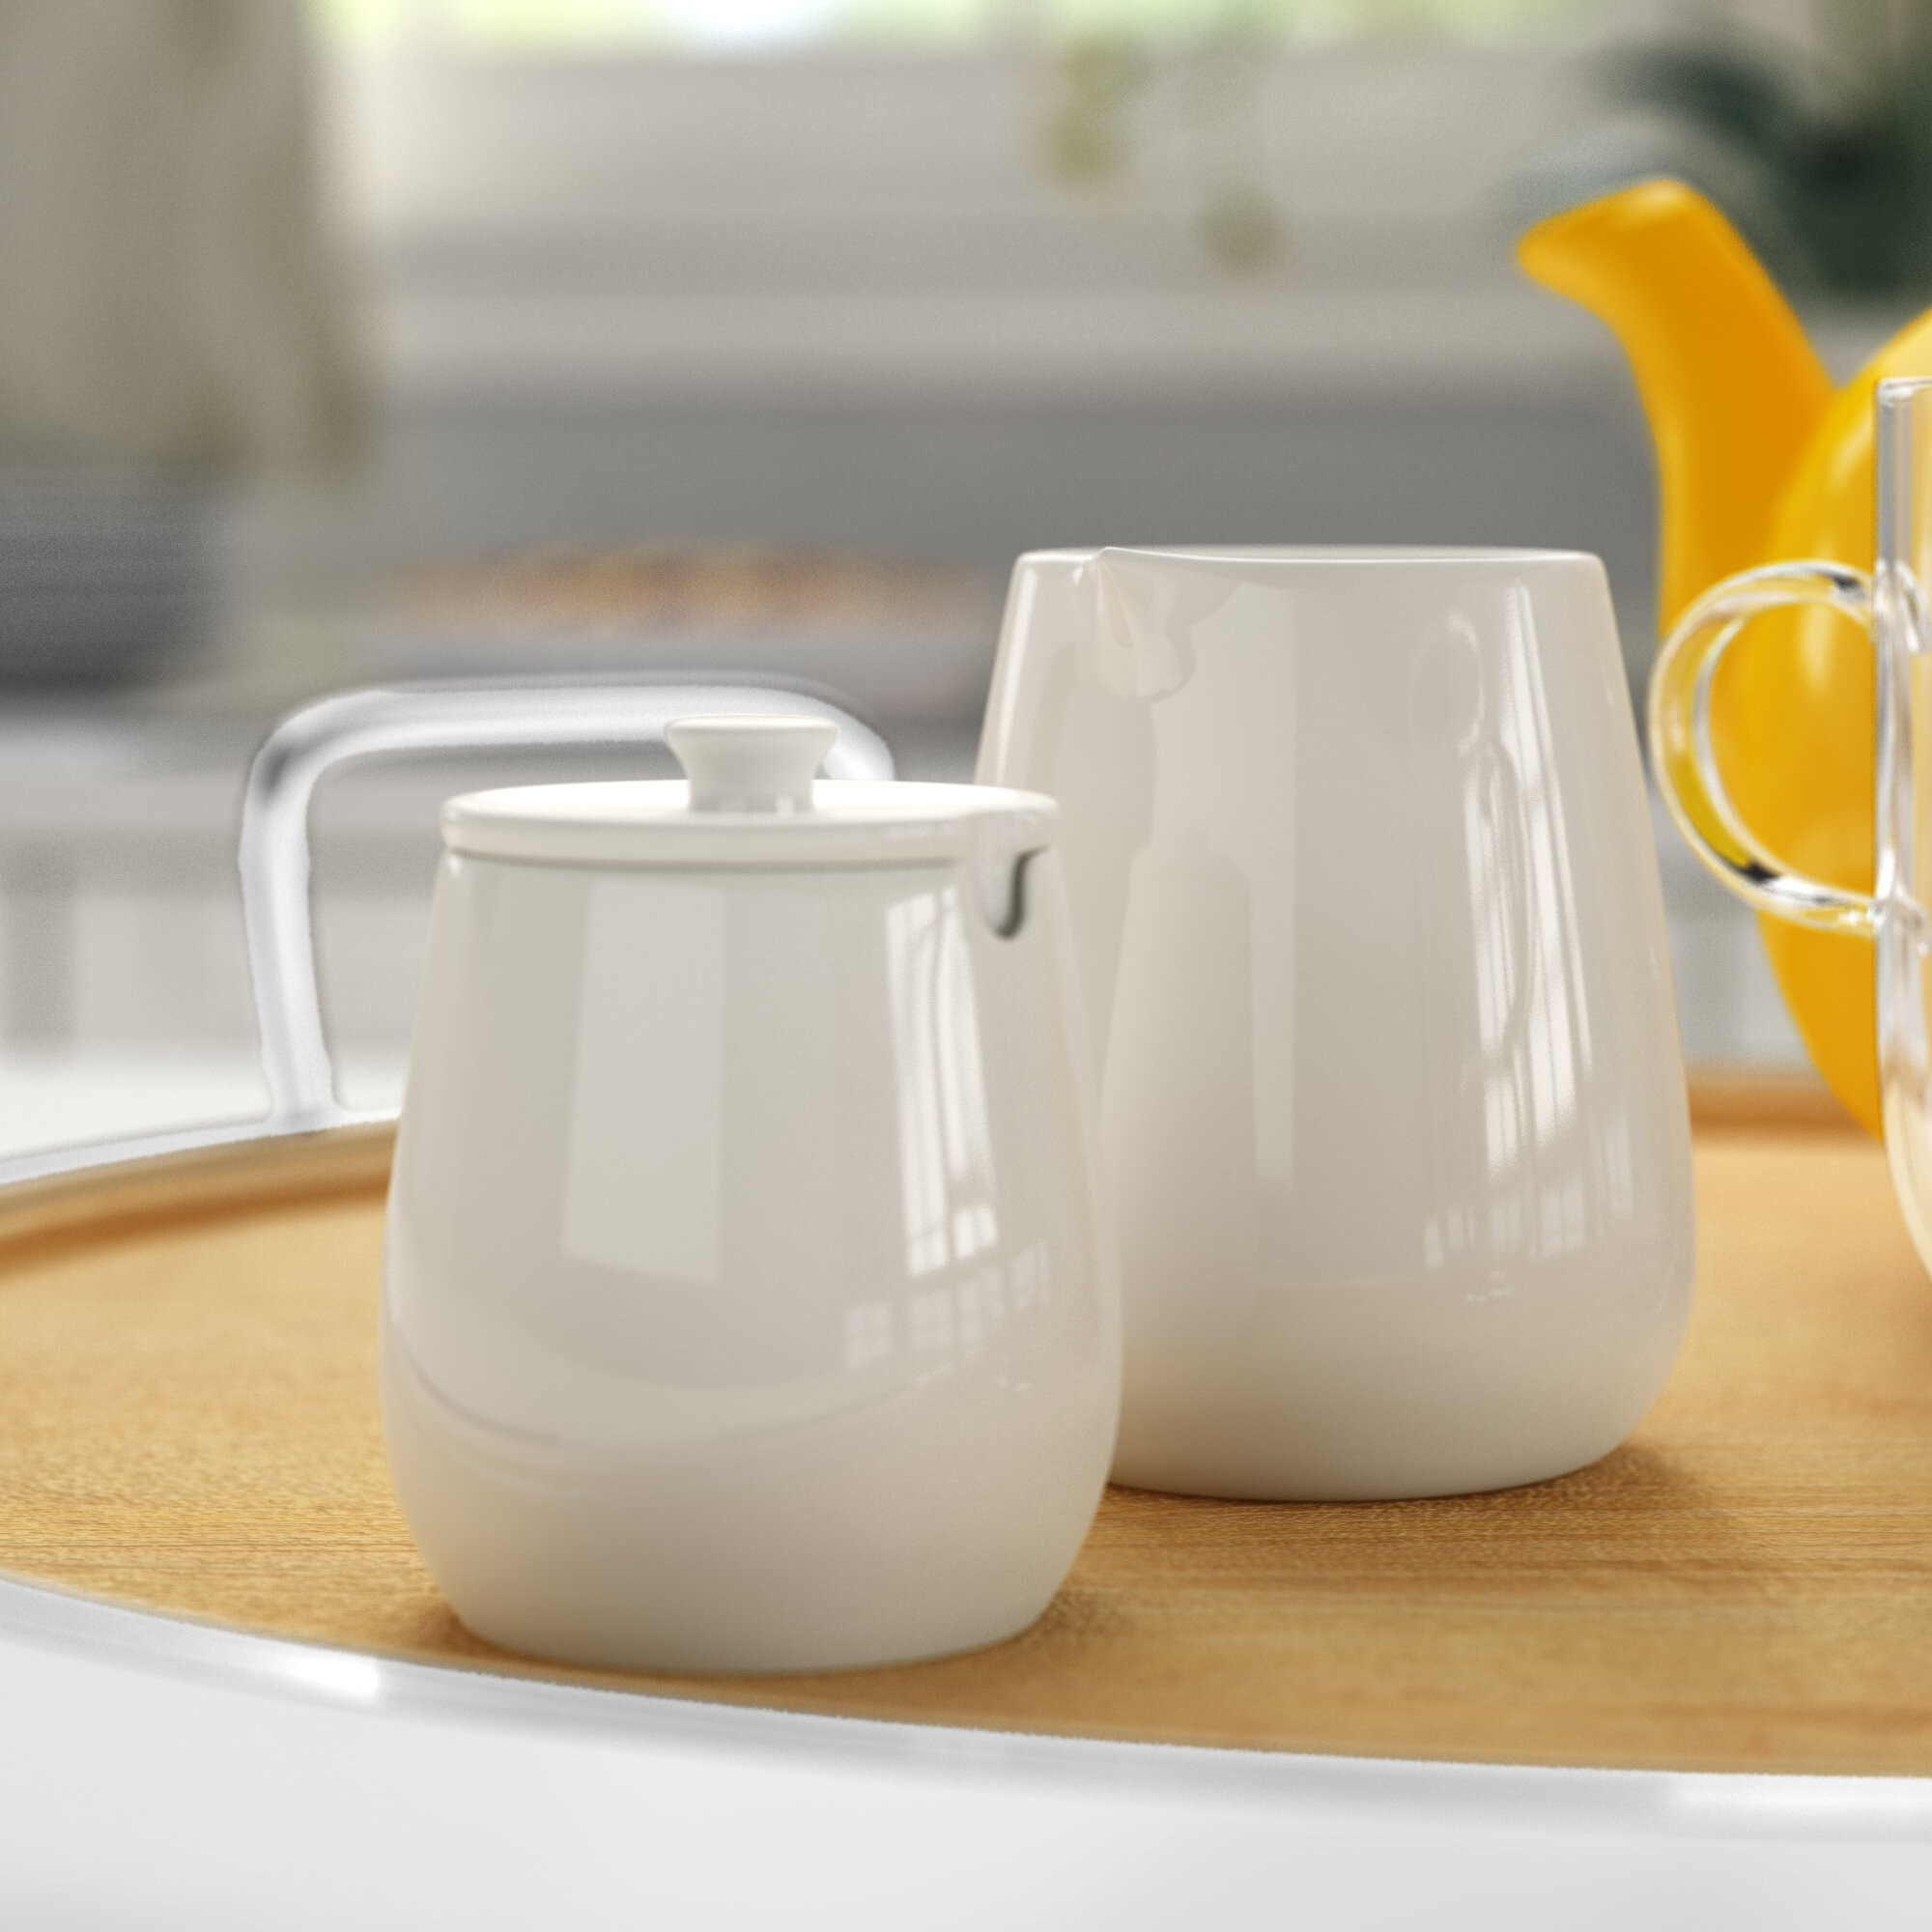 10 Best Sugar Bowls Creamers For 2021 Ideas On Foter